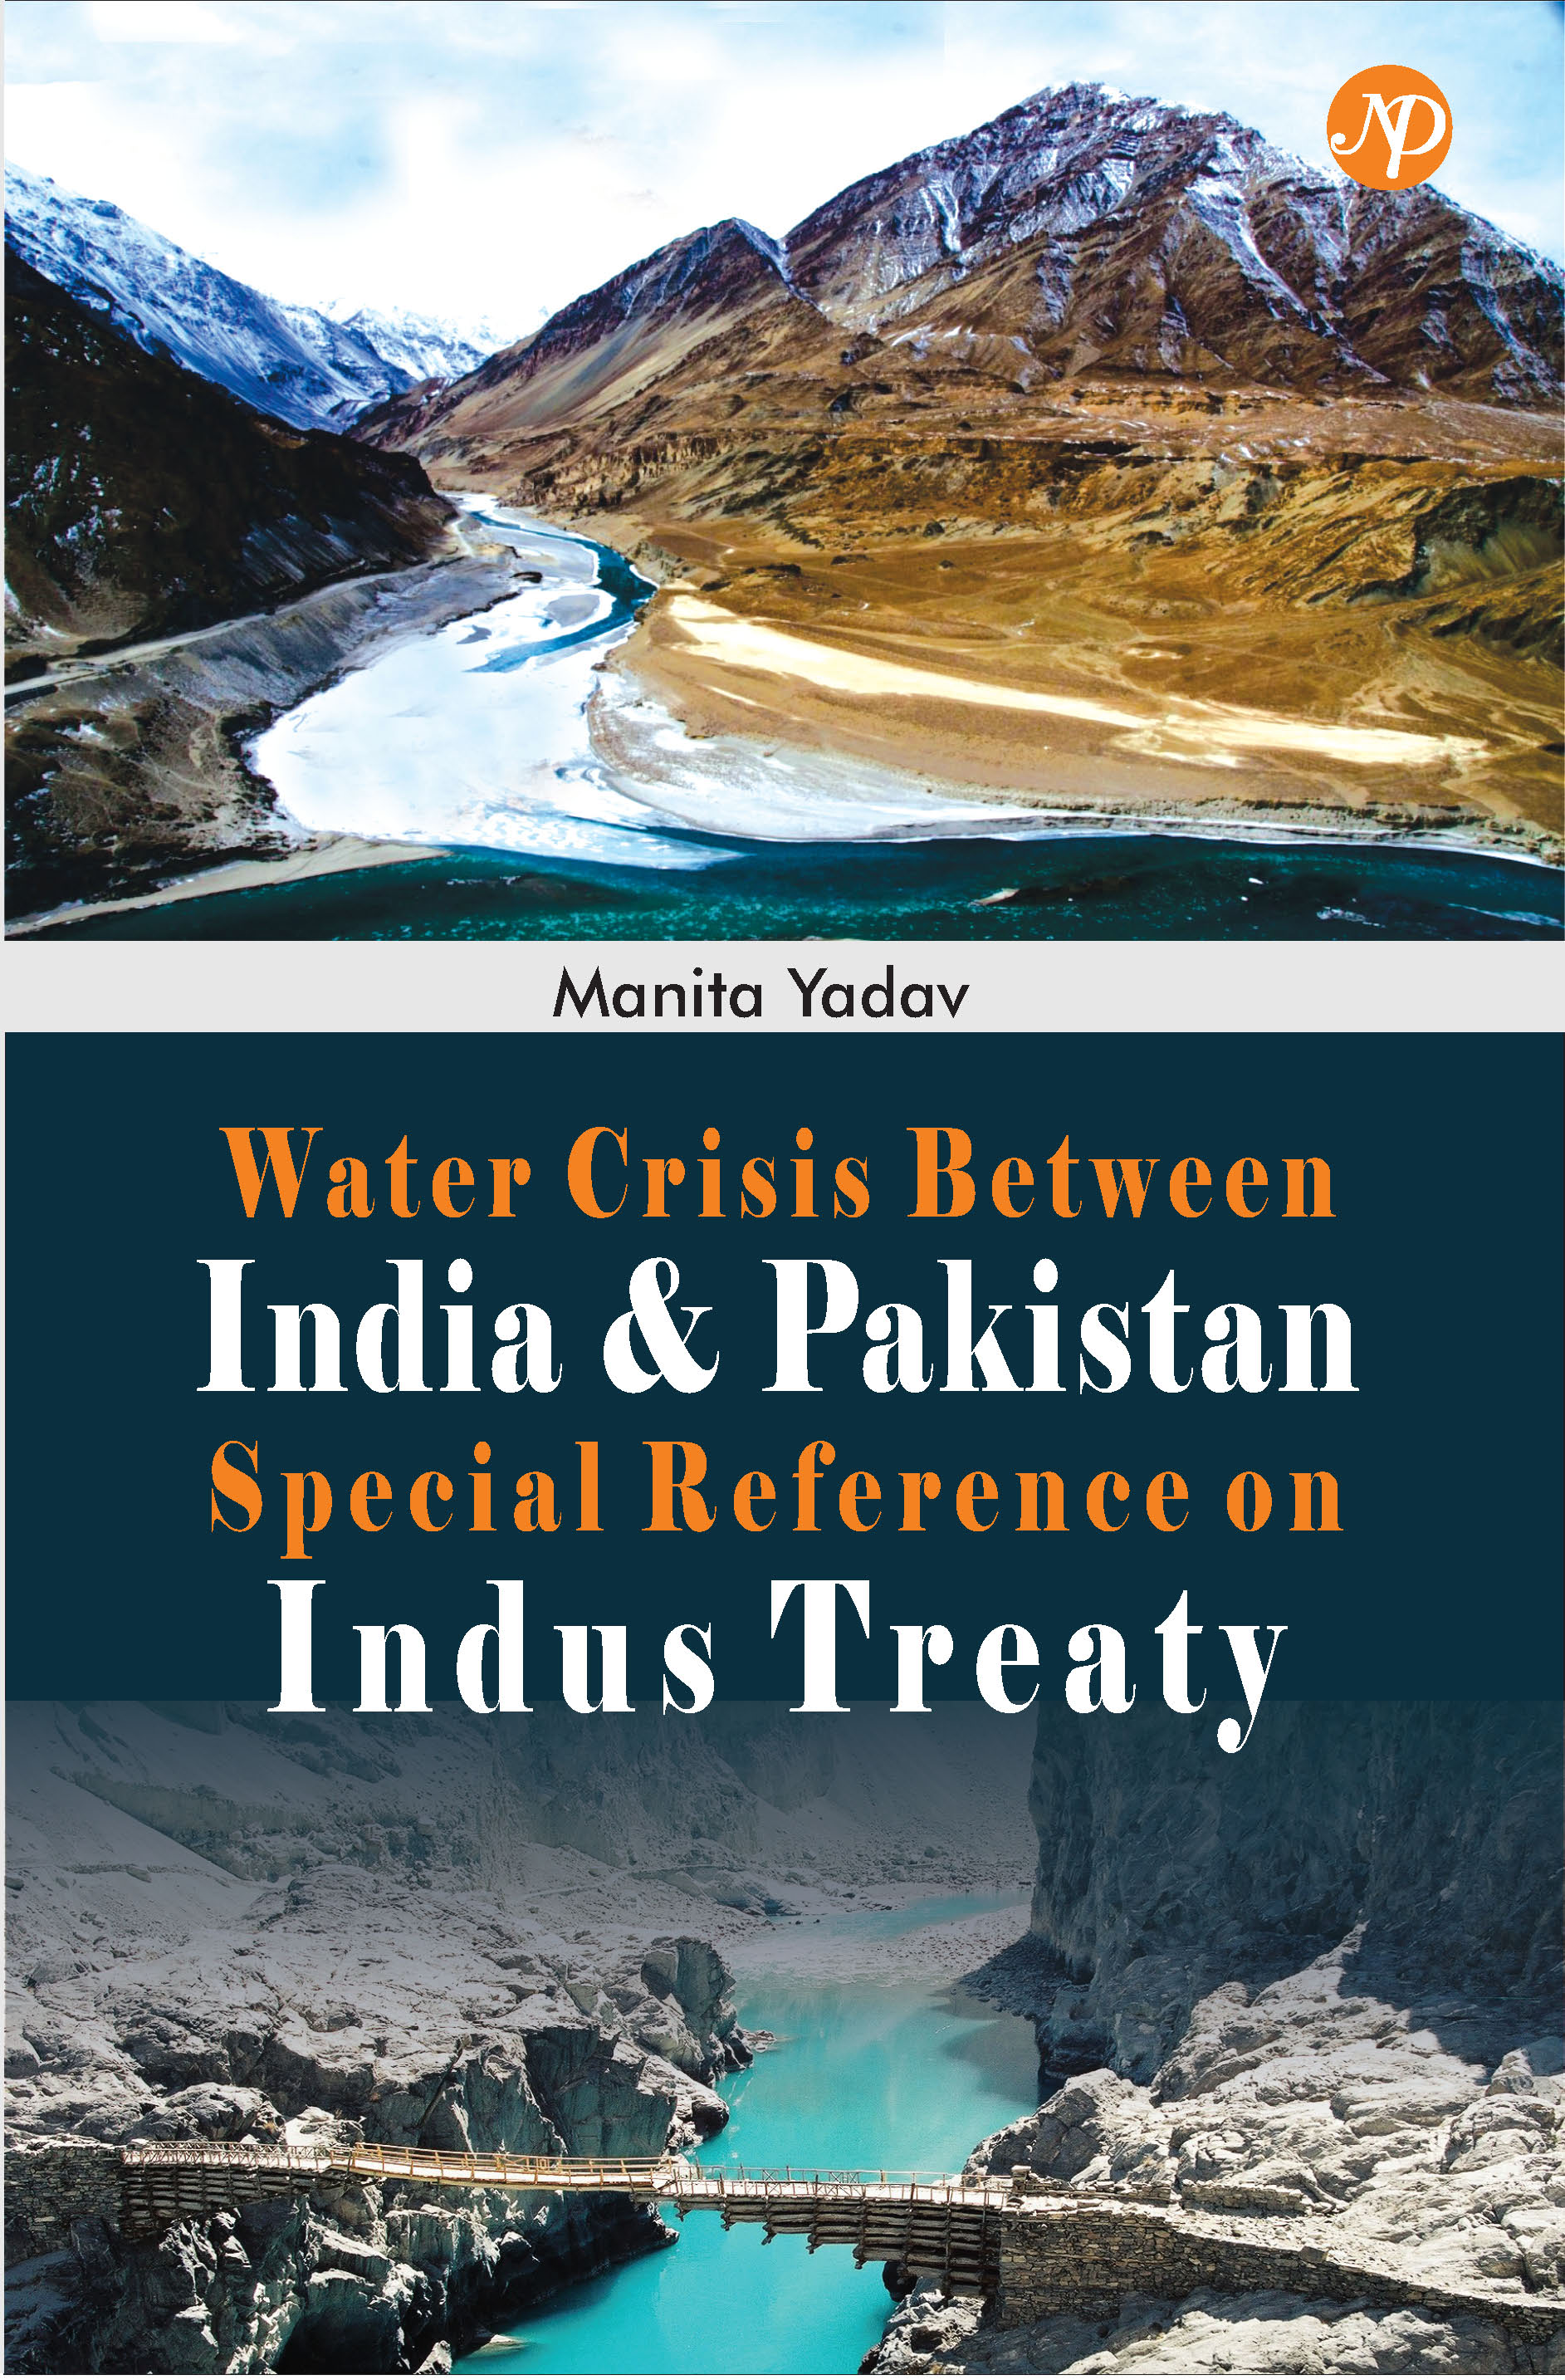 India–Pakistan Relations with Special Reference to Water Resources.jpg